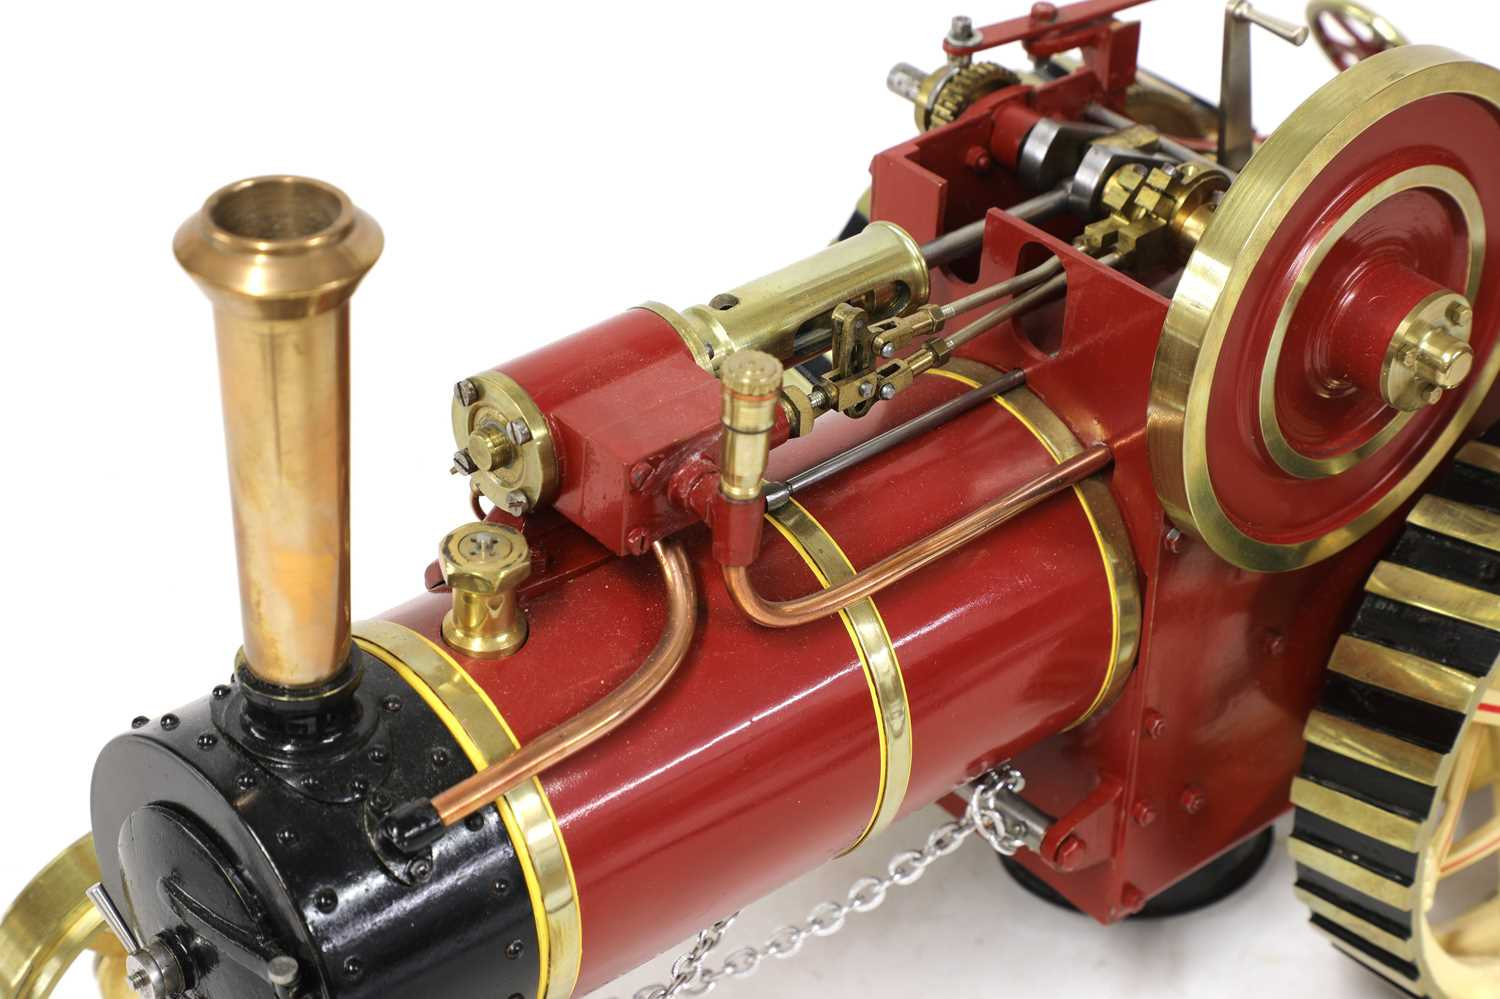 A ¾in scale model Burrell-type live steam traction engine, - Image 5 of 7